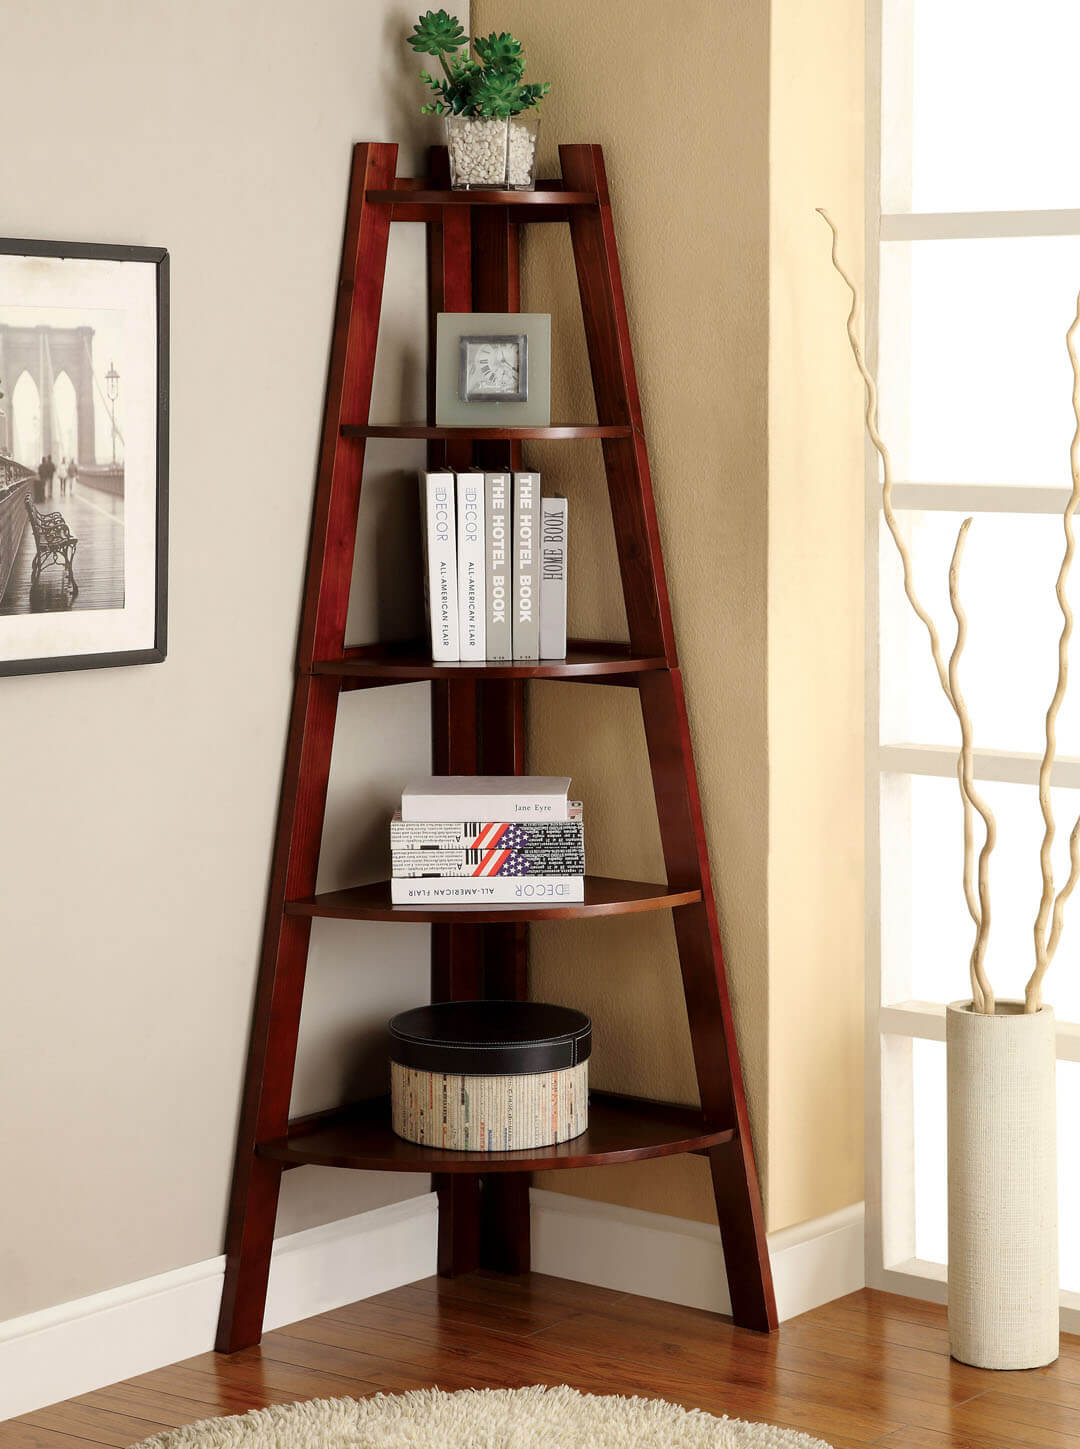 Tall and Graceful A Frame Bookshelf